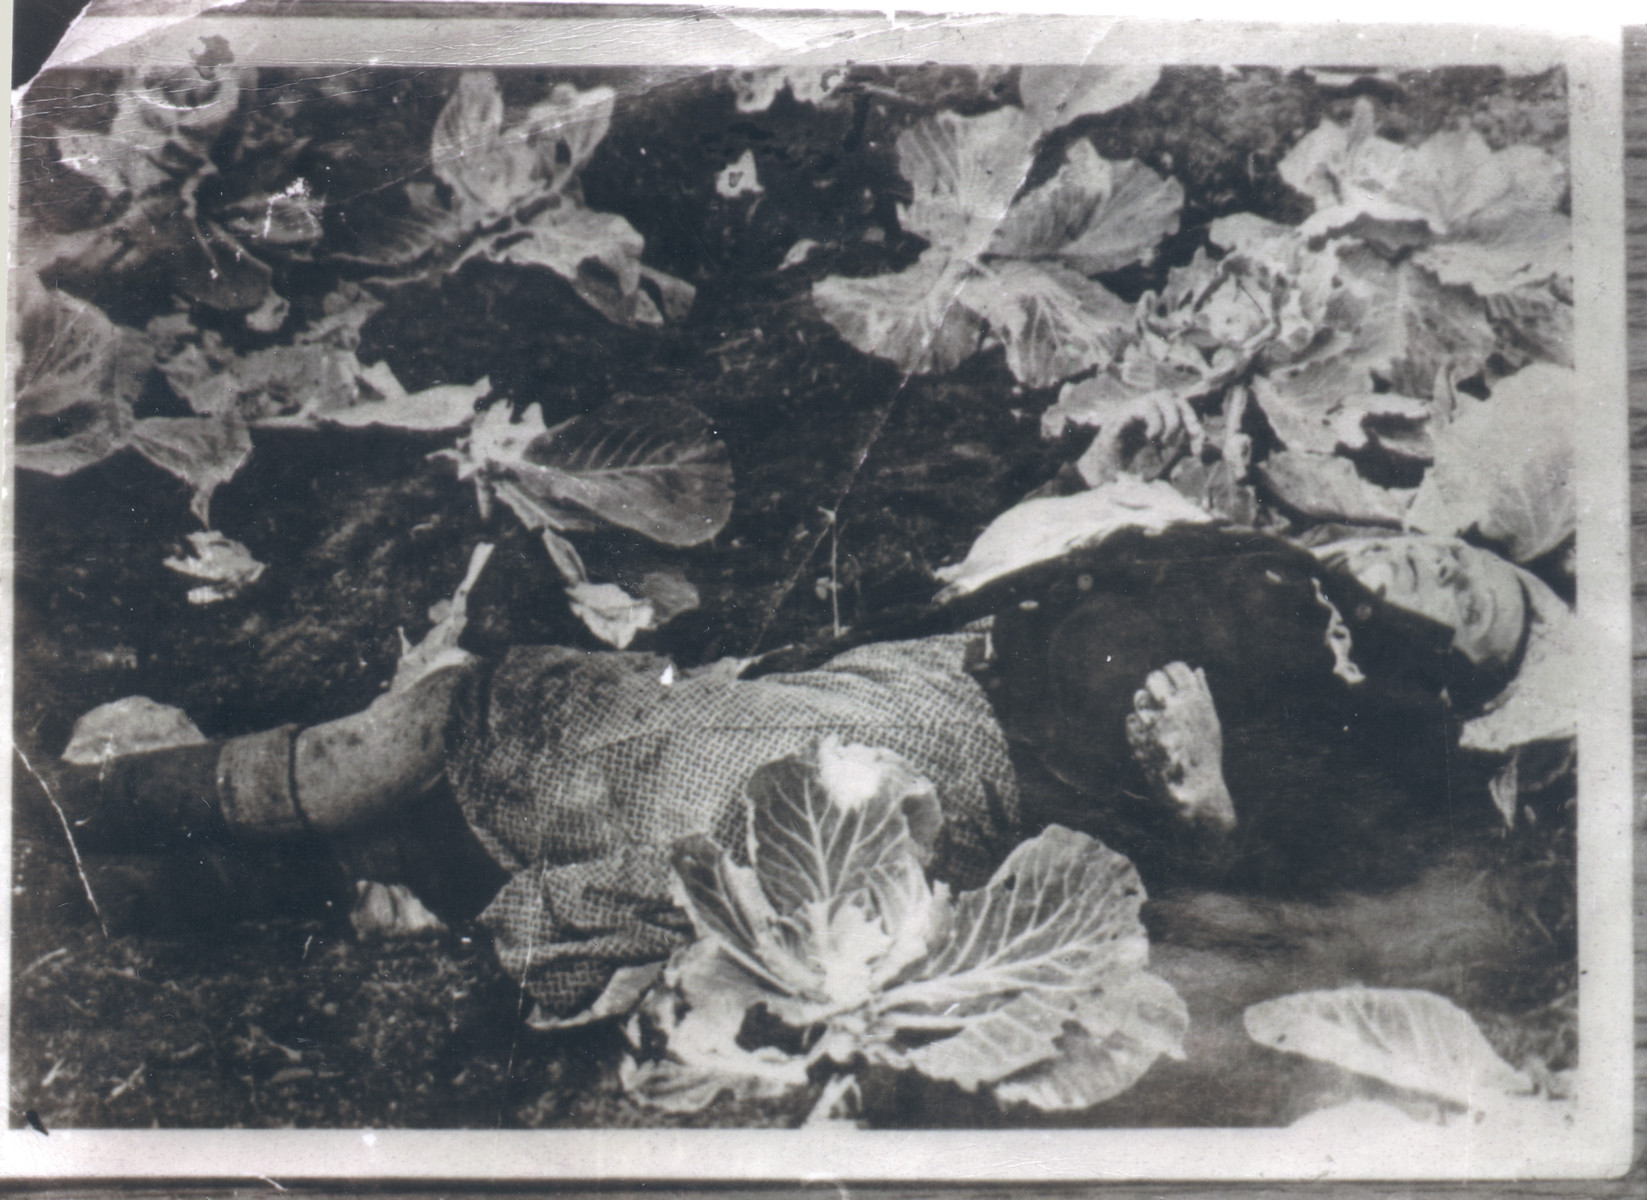 A female corpse lies among some plants in the Klooga camp following liberation.